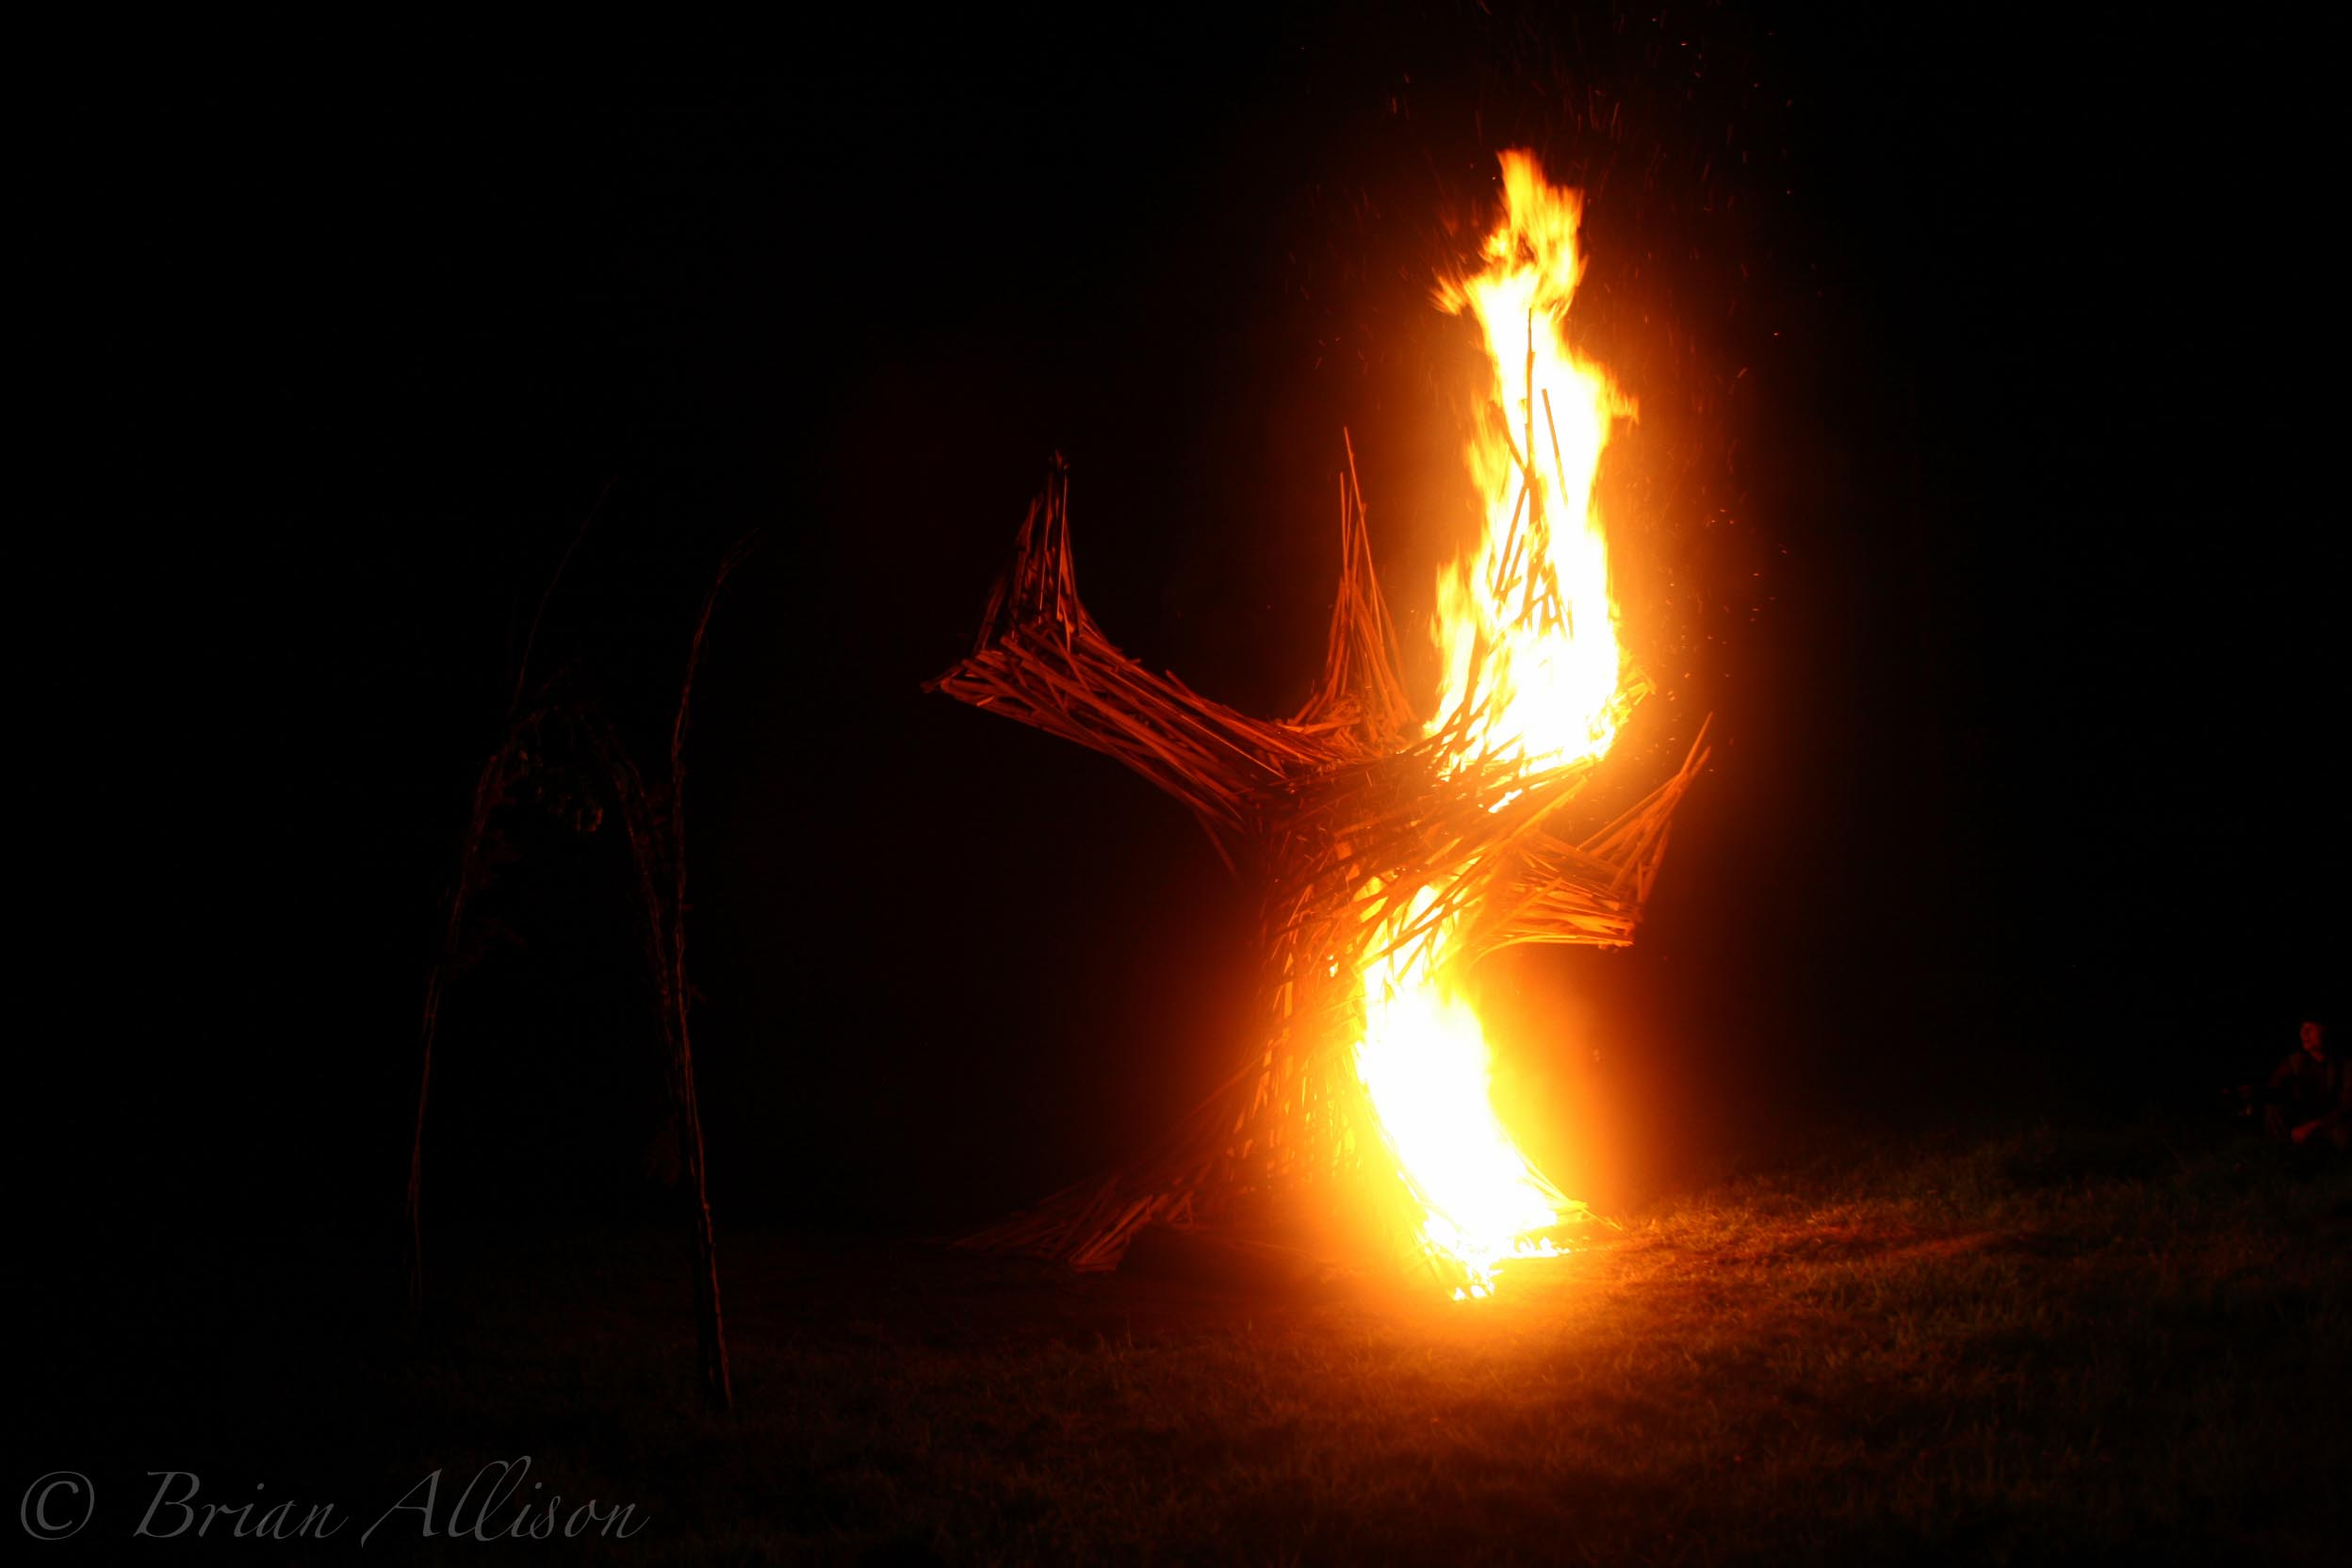 sculpture on fire